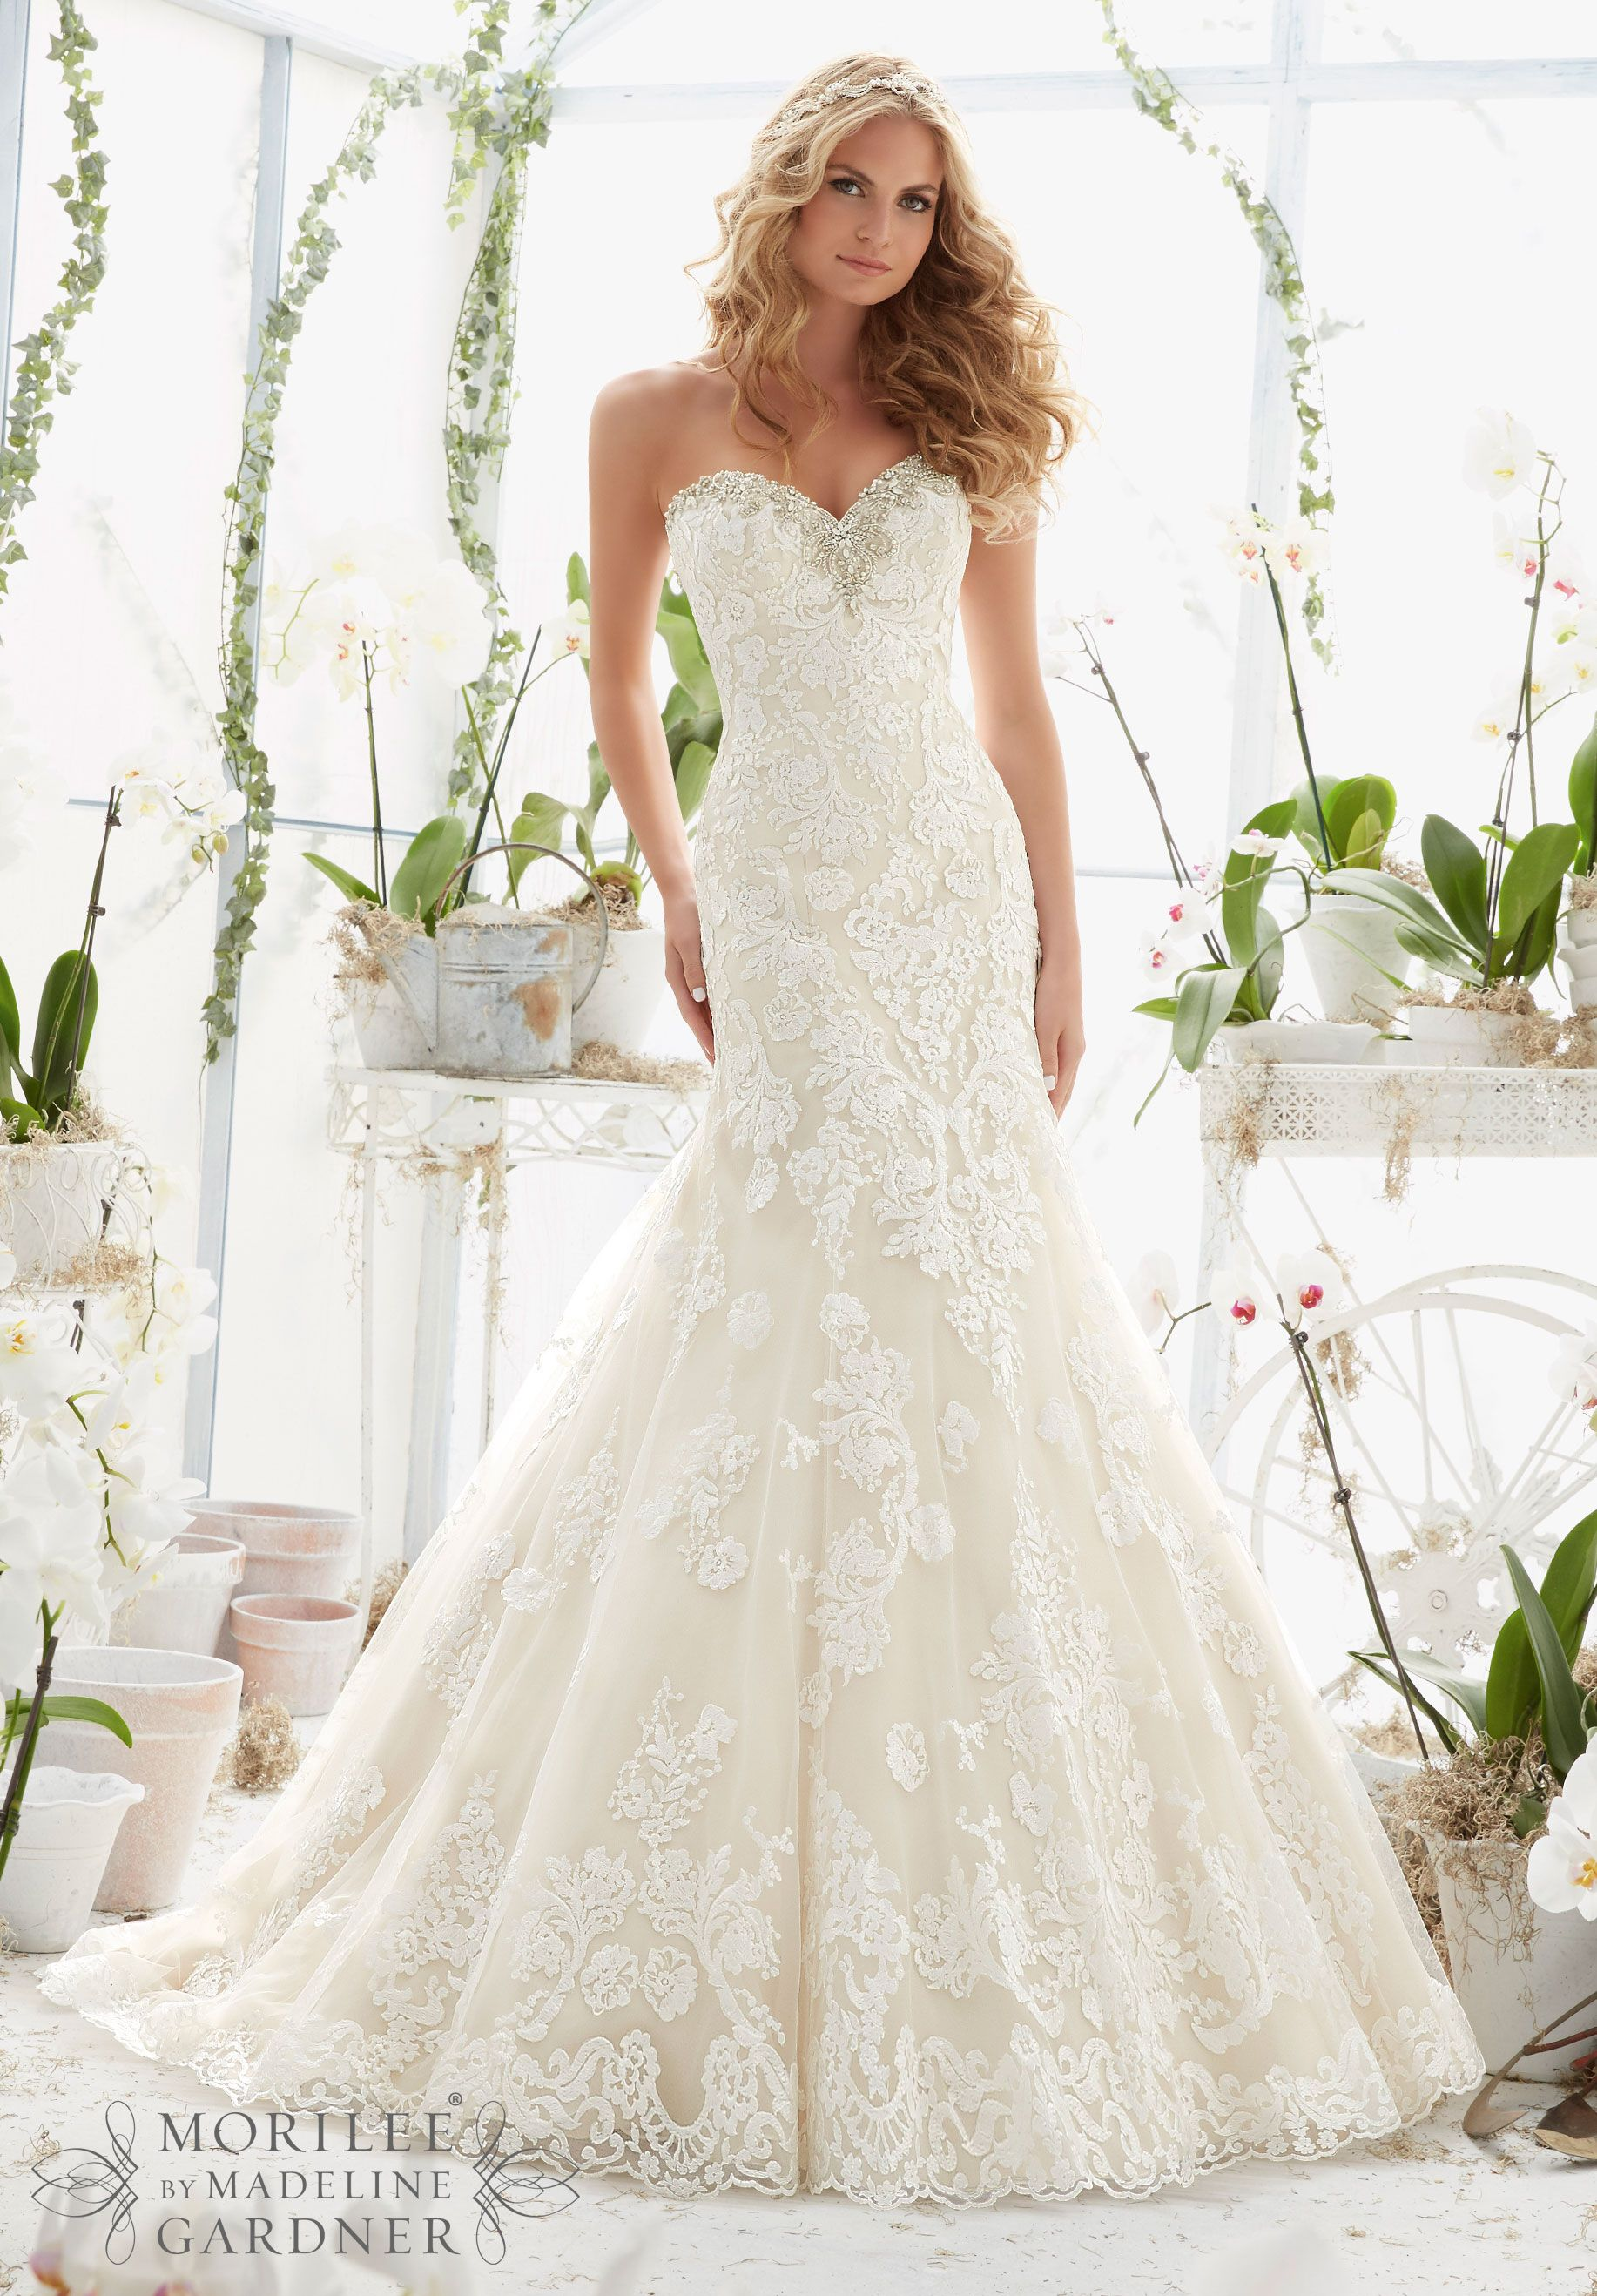 The best designer wedding gowns and accessories can be found at ...